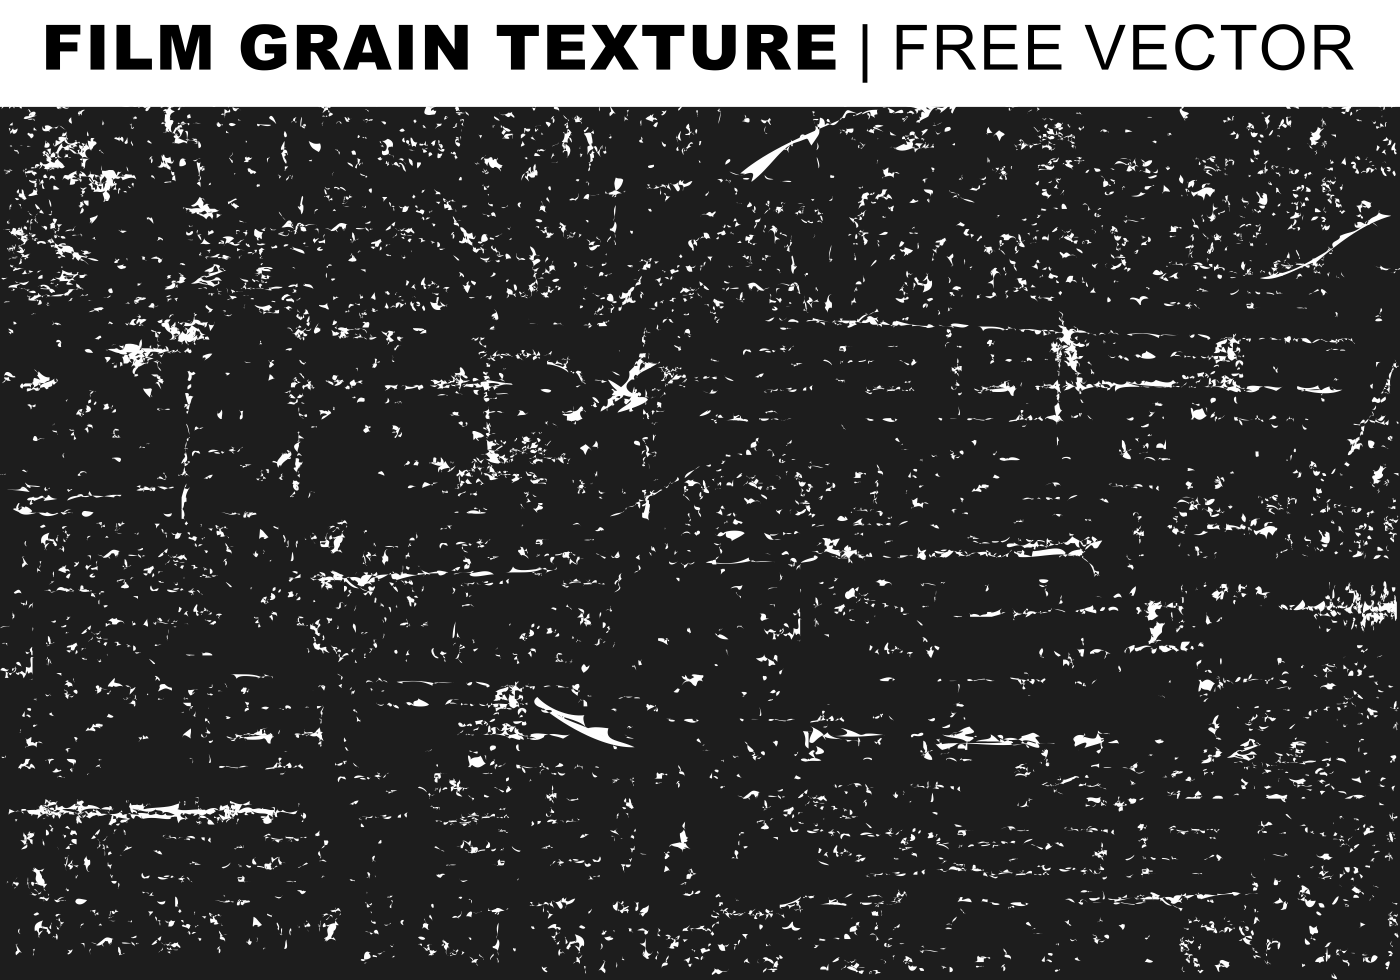 Film Grain Texture Free Vector Download Free Vector Art